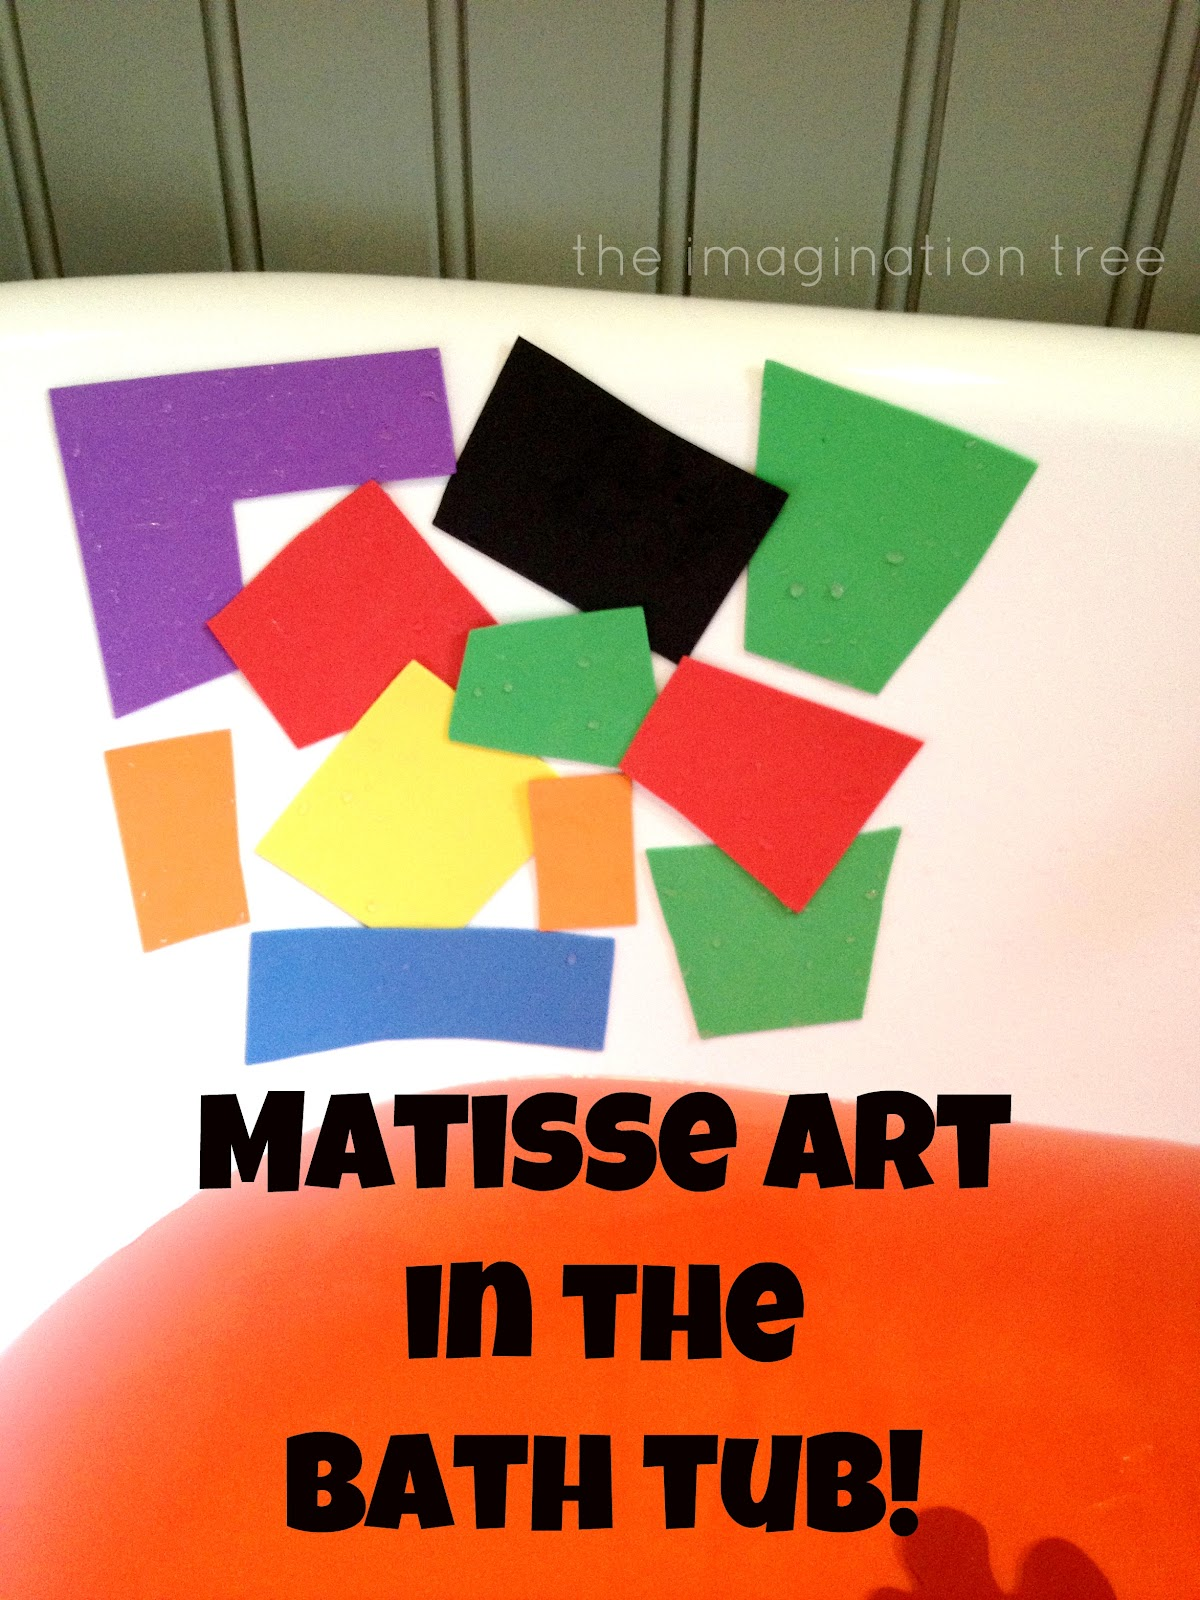 Matisse Art in the Bath Tub! - The Imagination Tree